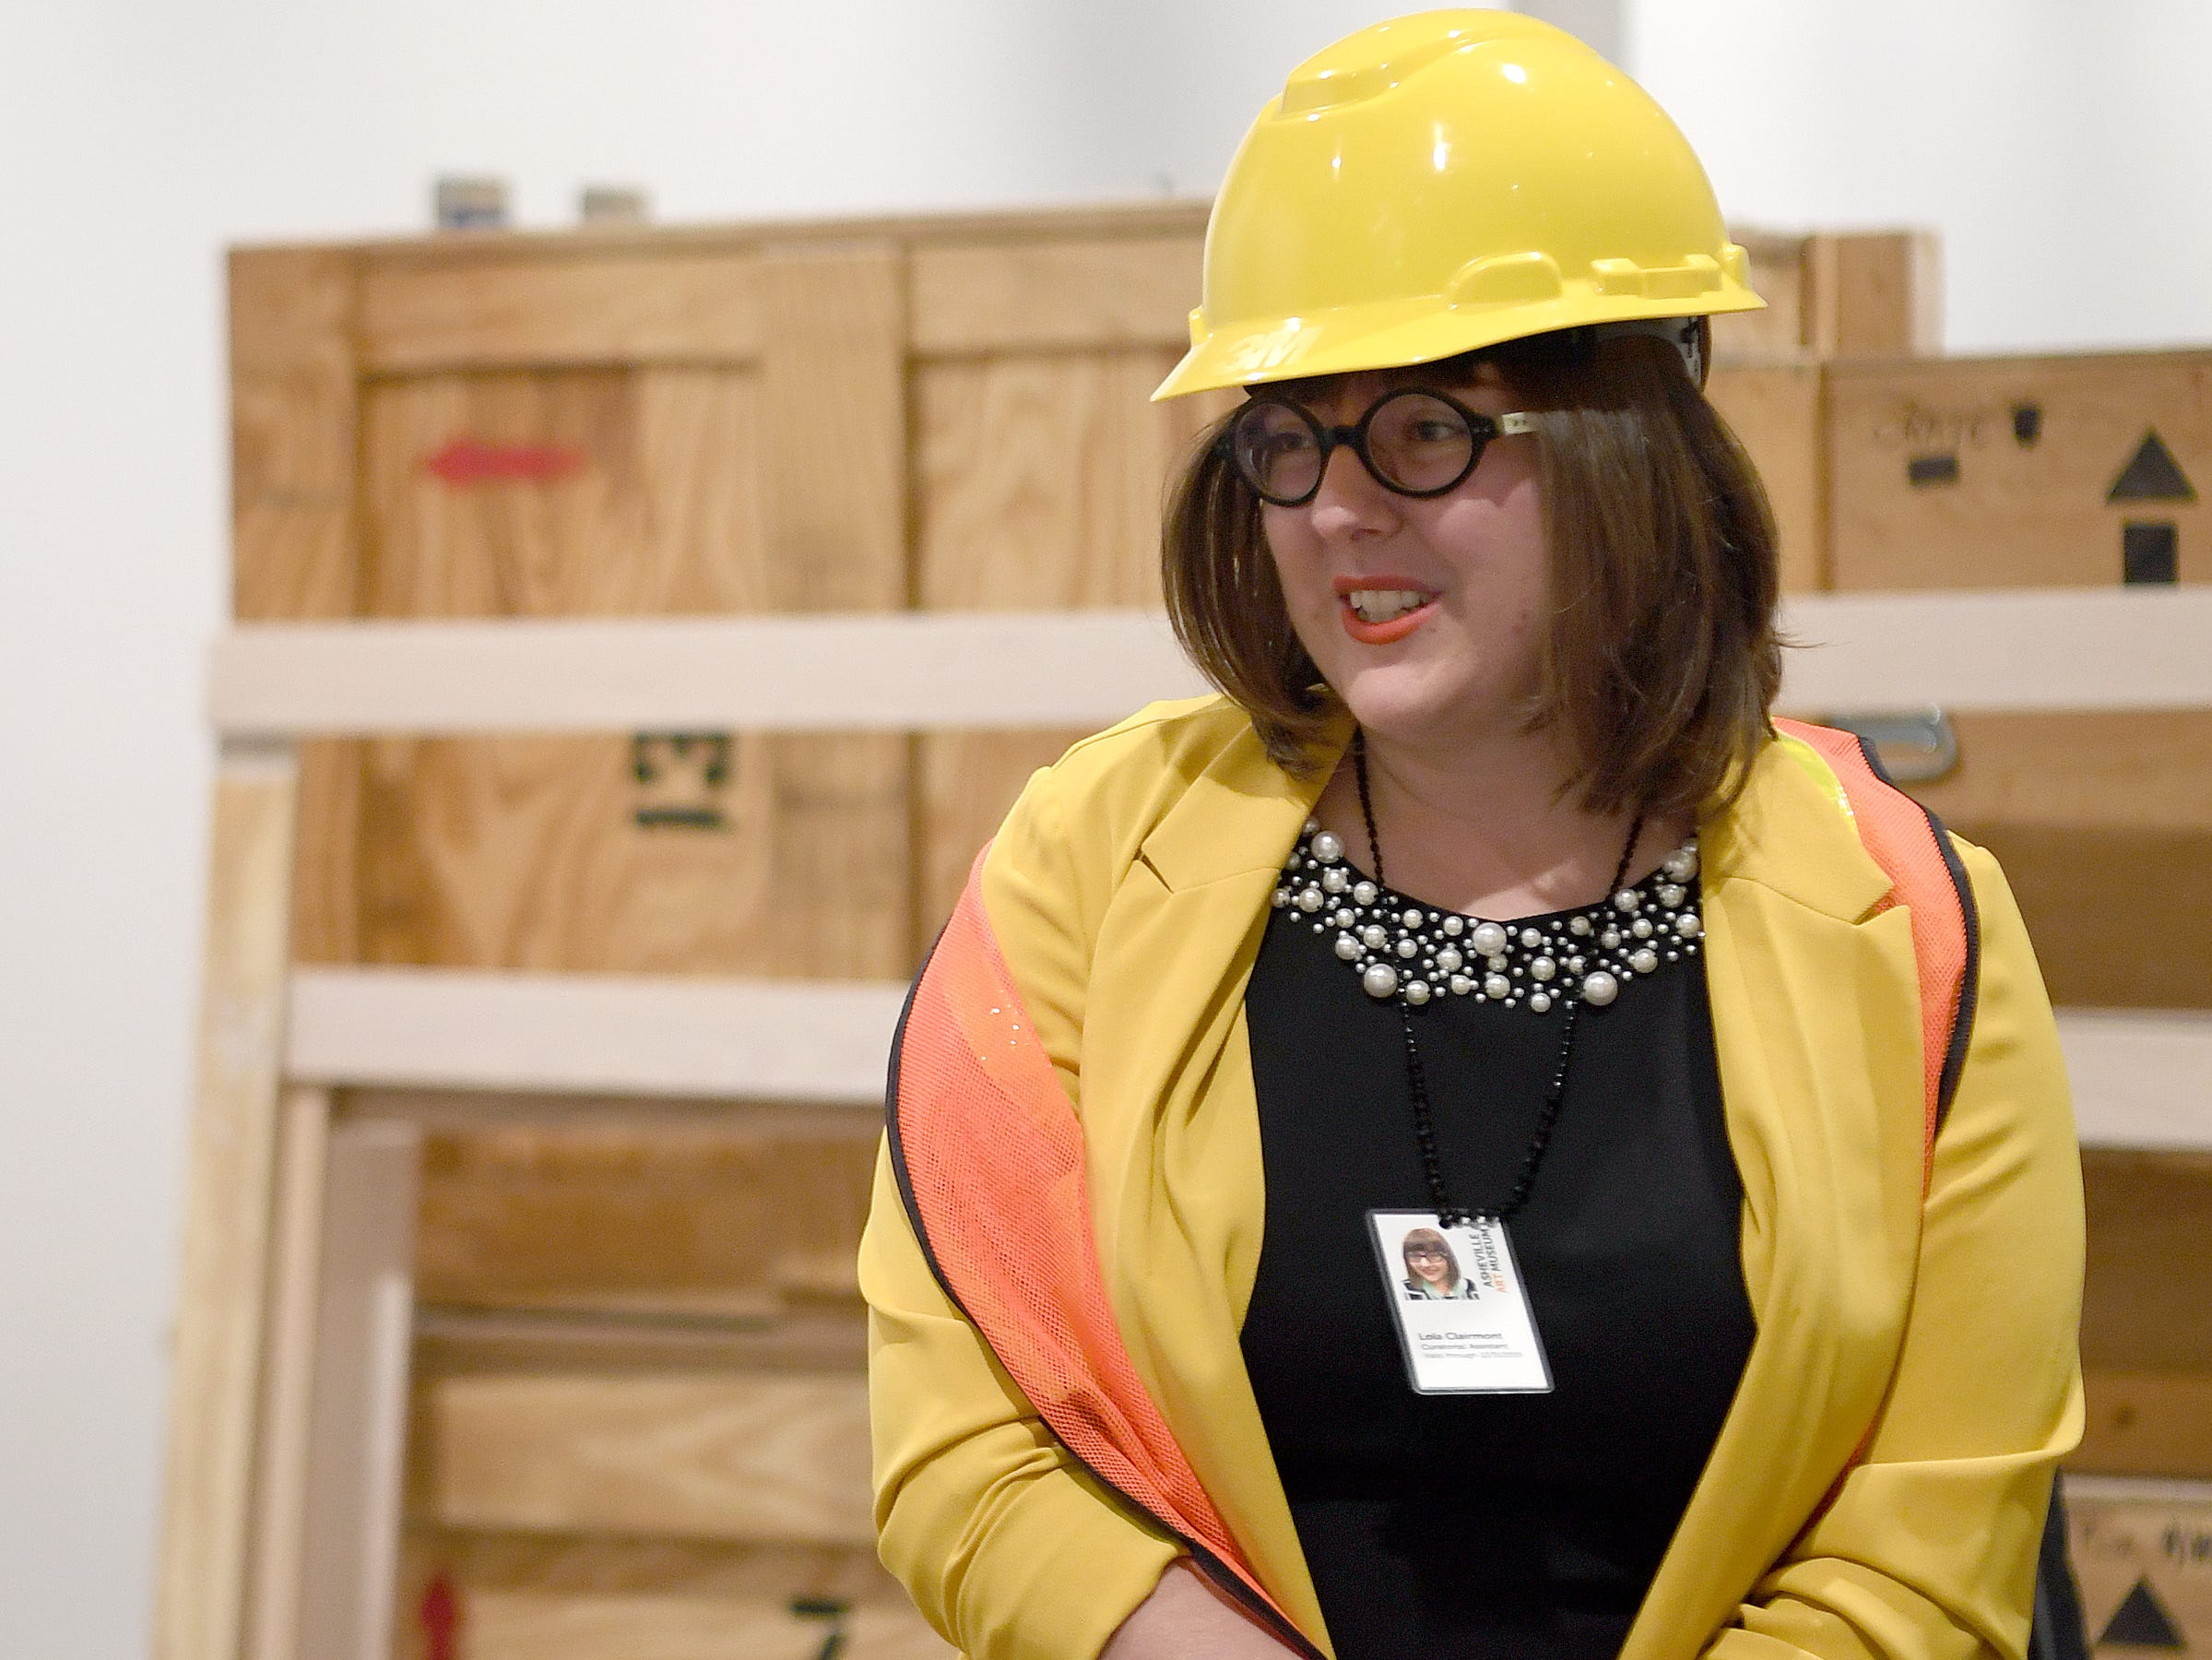 """Asheville Art Museum curatorial assistant Lola Clairmont talks about the coming exhibit, """"Appalachia Now! An Interdisciplinary Survey of Contemporary Art in Southern Appalachia"""" during a media tour of the new museum on May 3, 2019."""